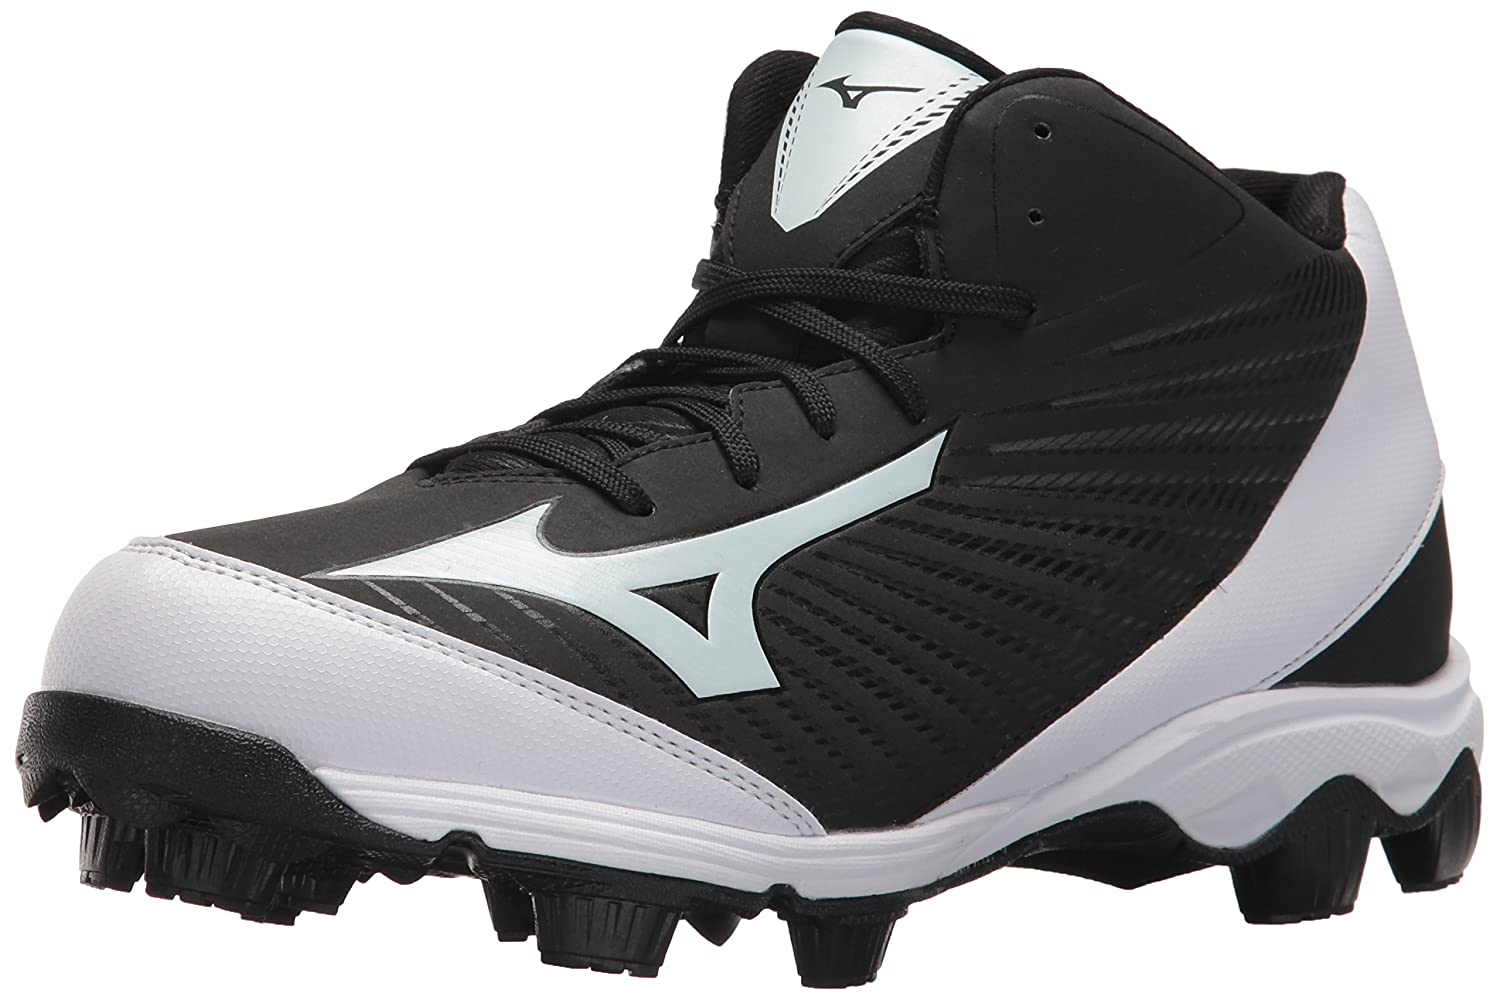 Mizuno (MIZD9) メンズ 9-Spike Advanced Franchise 9 Molded Baseball Cleat Mid B072MFJL7V 10 D US|ブラック/ホワイト ブラック/ホワイト 10 D US